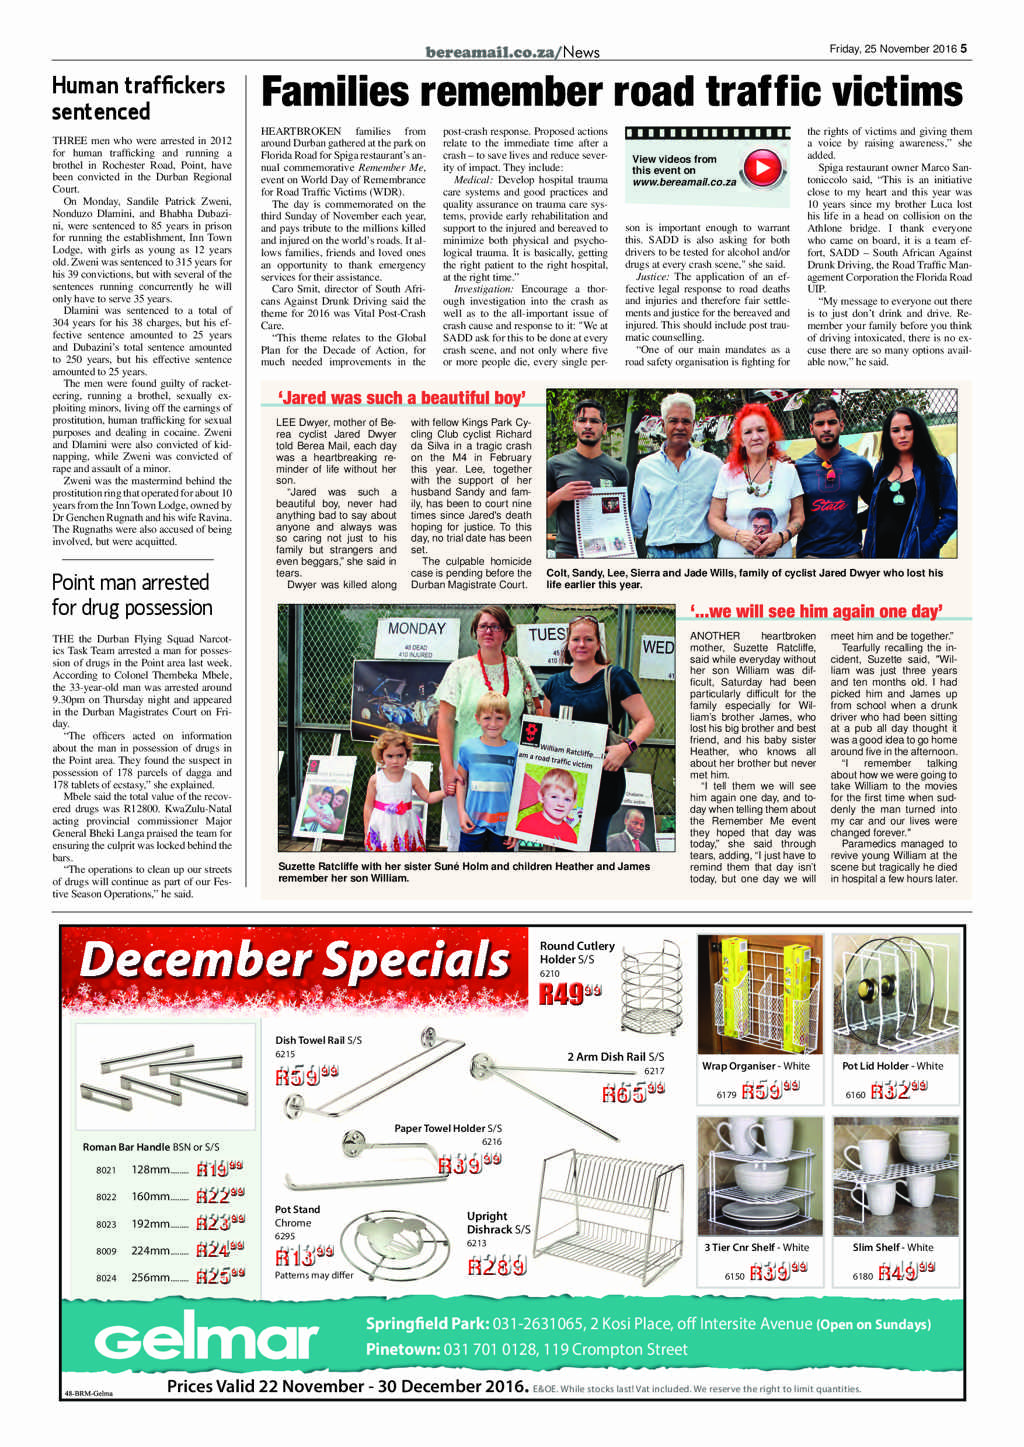 berea-mail-25-november-2016-epapers-page-5